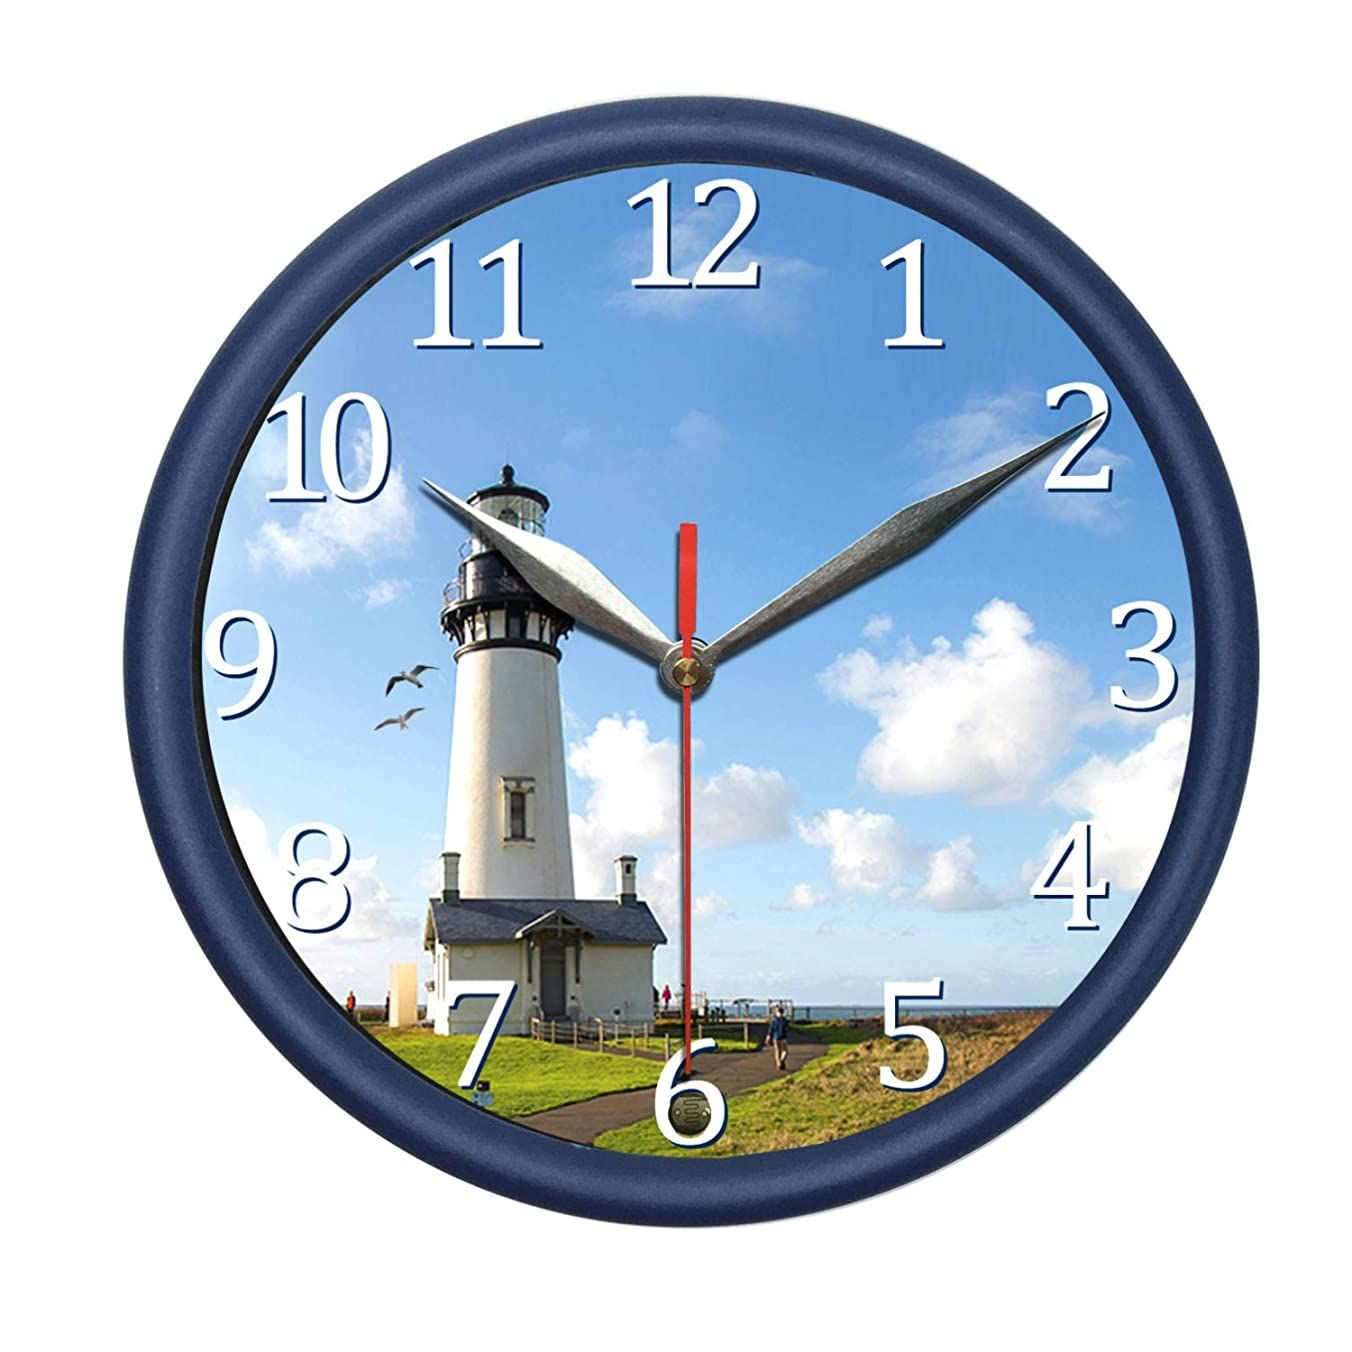 Pondtech Lighthouse Wall Clock With Sea Gull Sound And Light Decorate Your Bedroom Kitchen Or Office With Stylish Wall Clock In 2020 Clock Wall Clock Diy Clock Wall